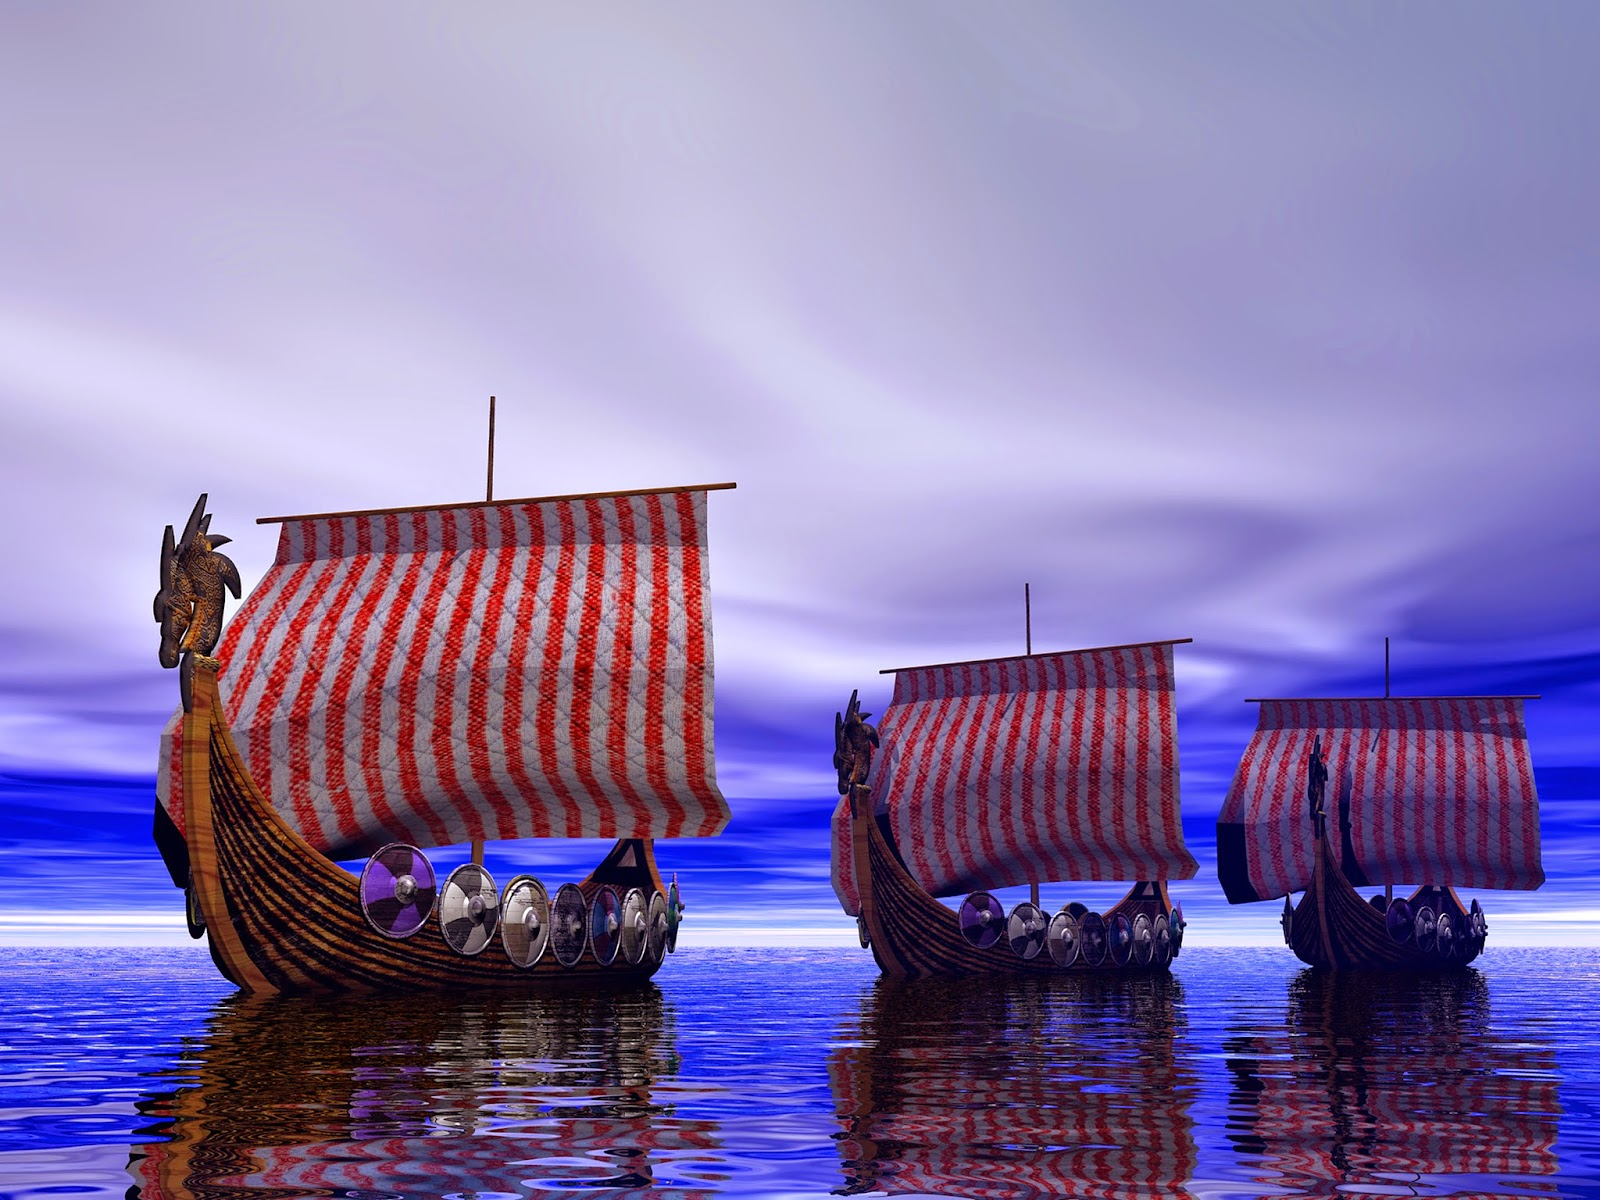 Viking ships saturated